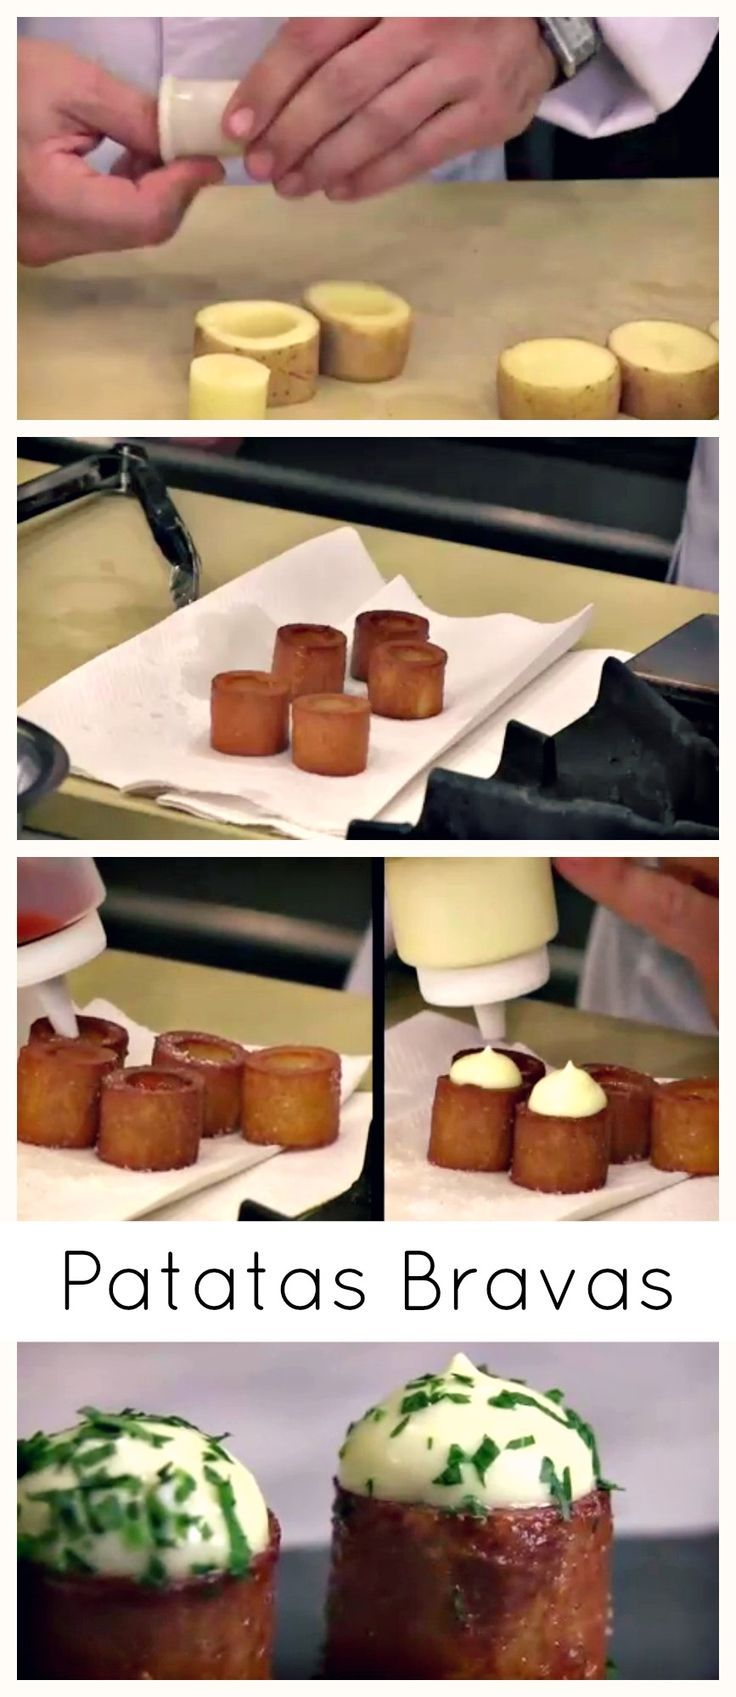 #Patatas Bravas: How To Make The #Spanish Classic #AppetizerFood: